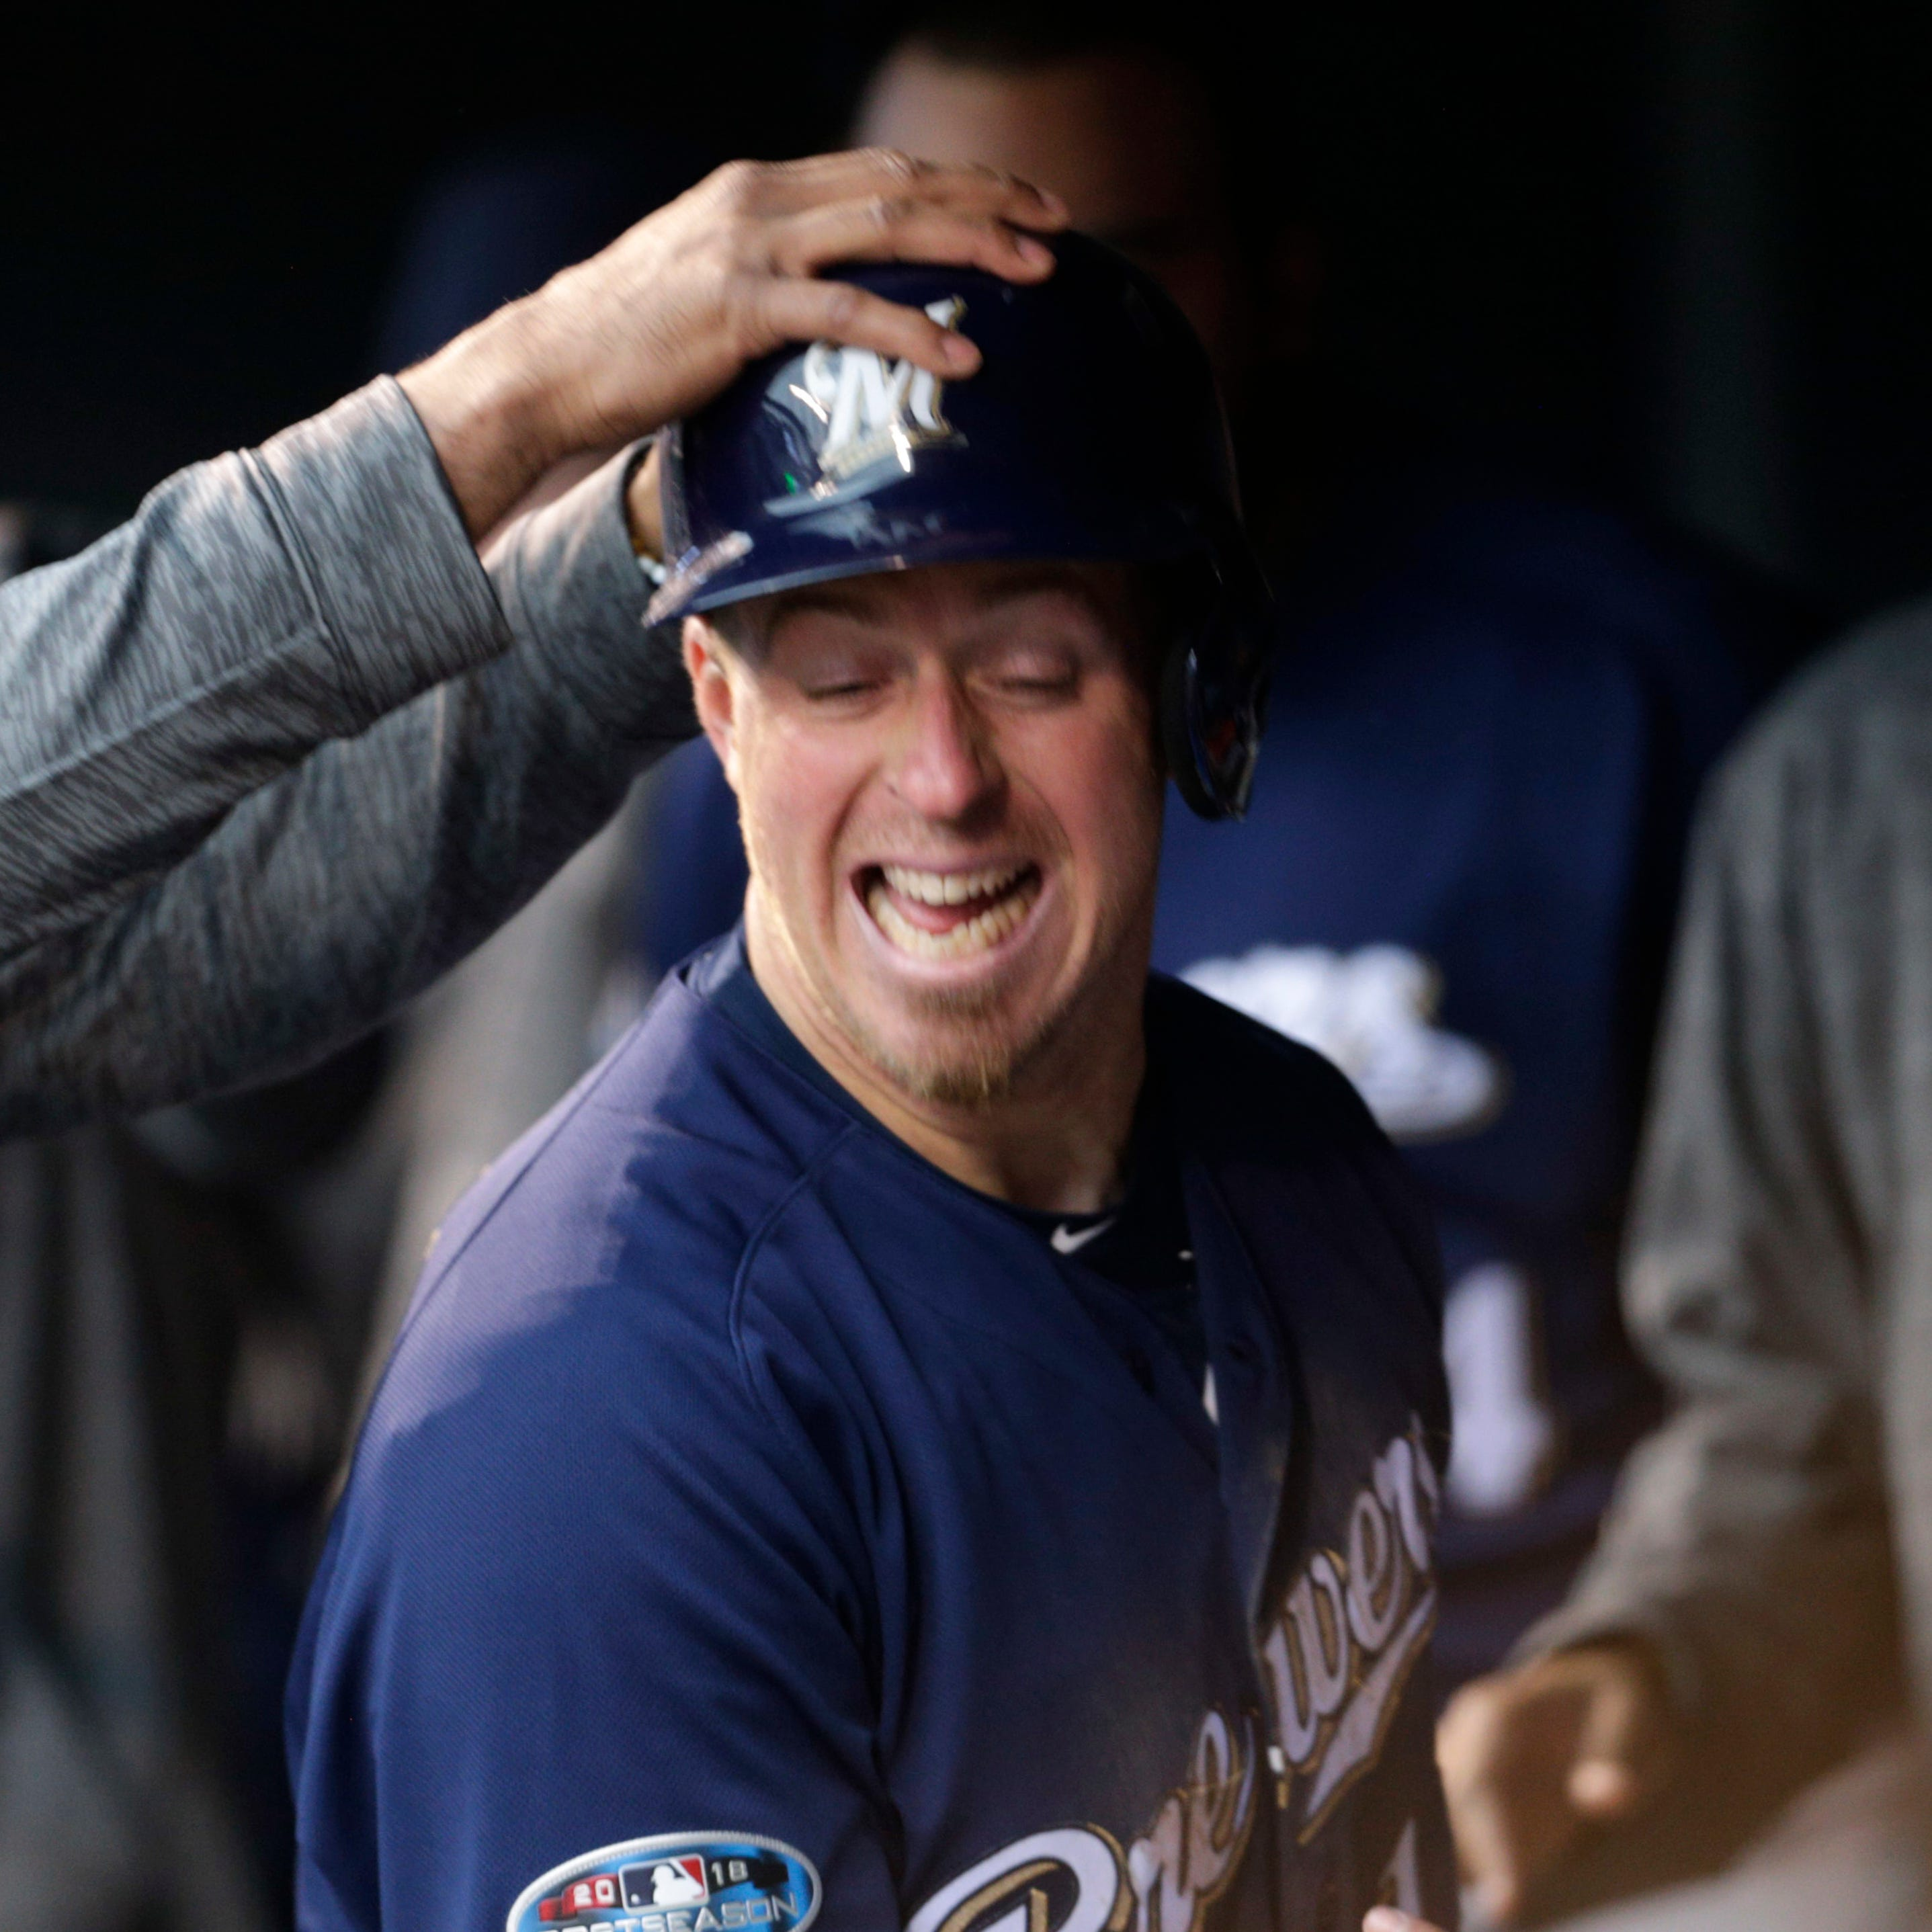 It's been a dream run for the ages for Brewers' Erik Kratz